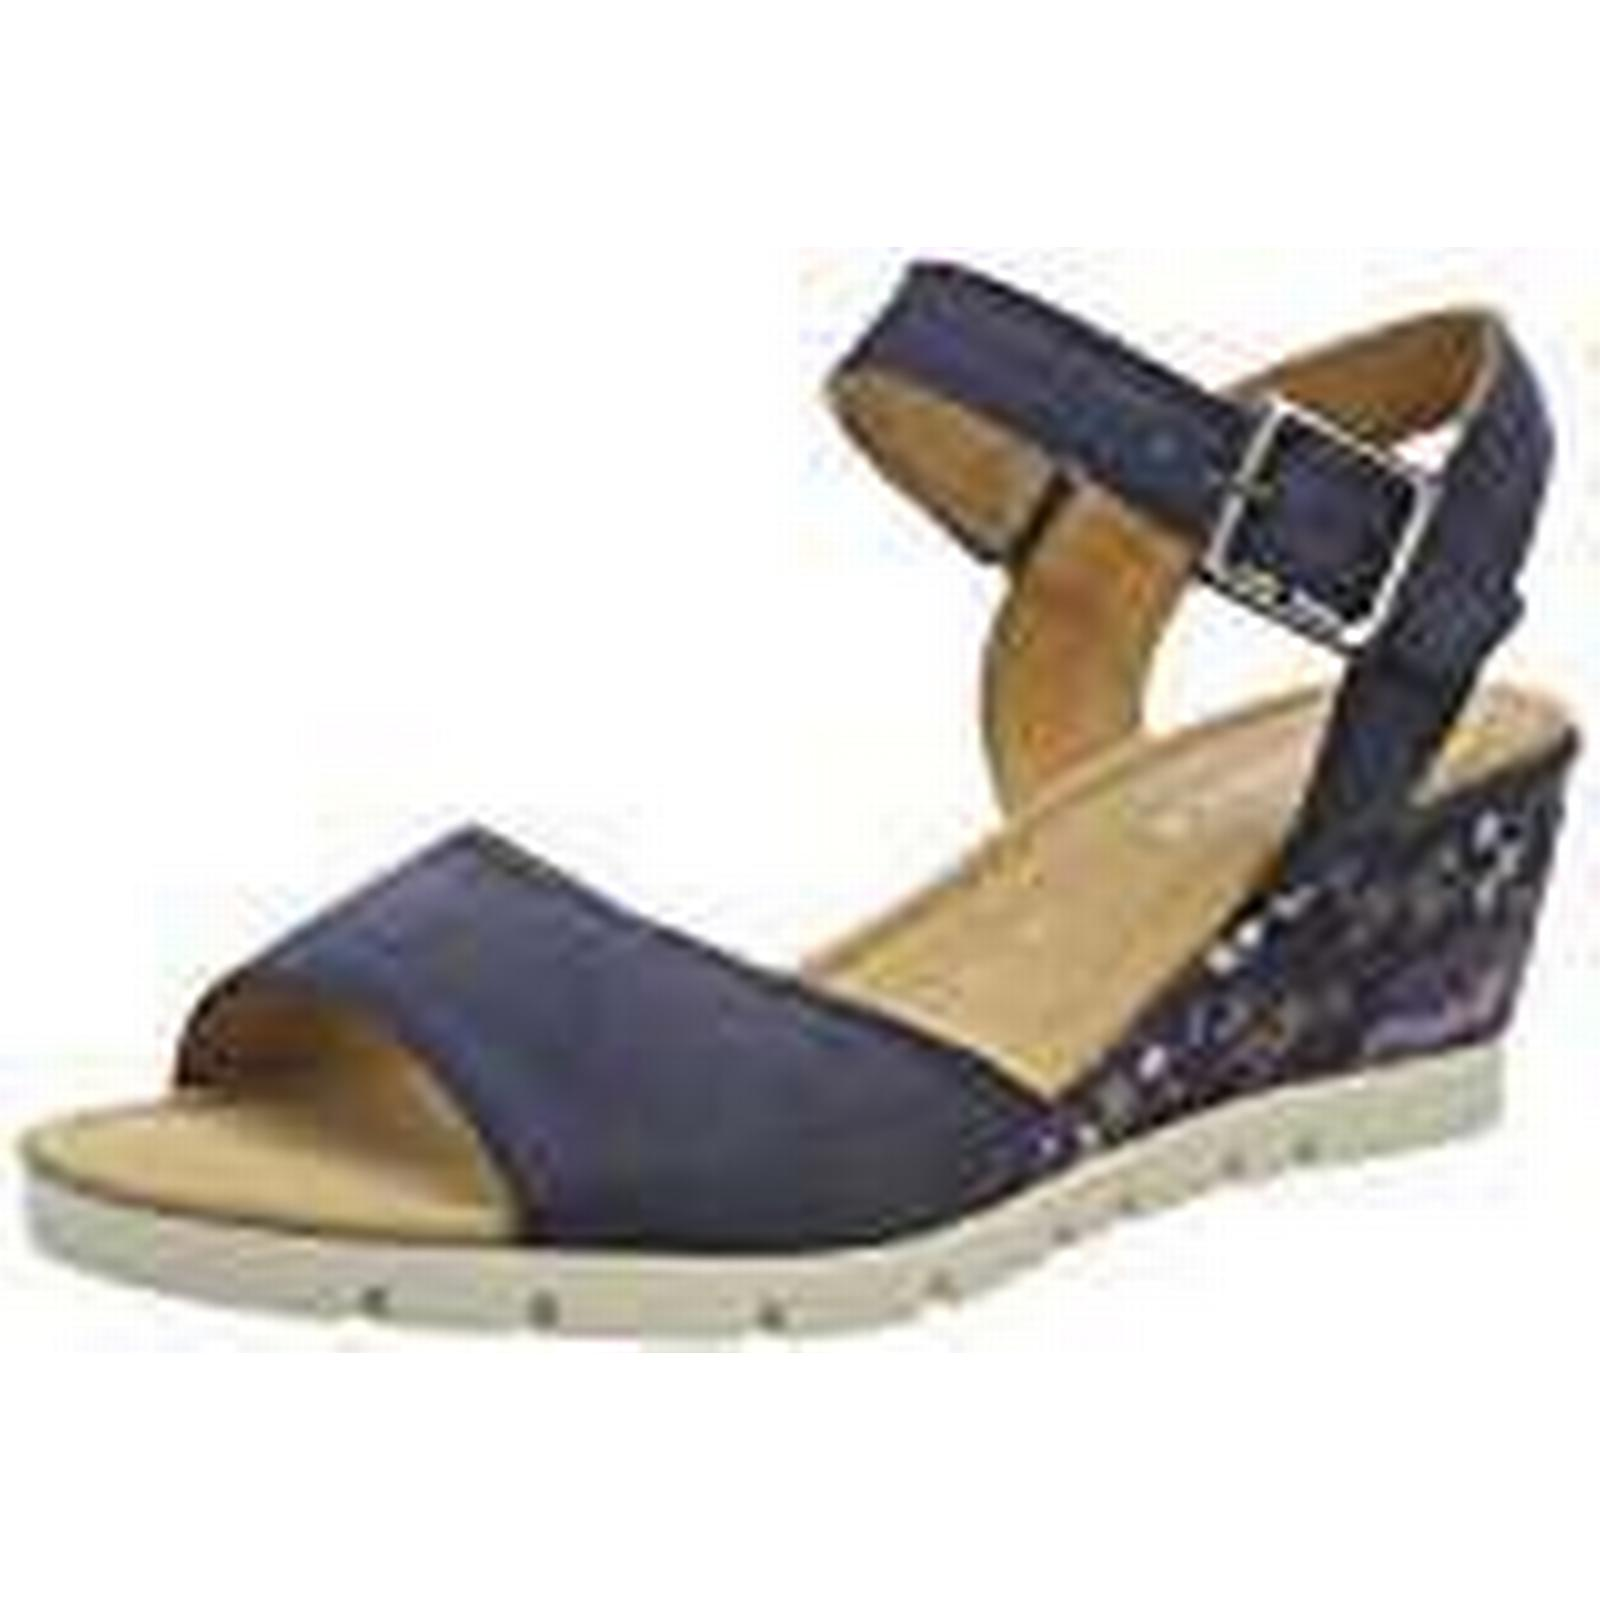 Gabor Shoes Women''s Comfort Blue Sport Ankle Strap Sandals, Blue Comfort (Navy Flower), 6 UK 6 UK 622233